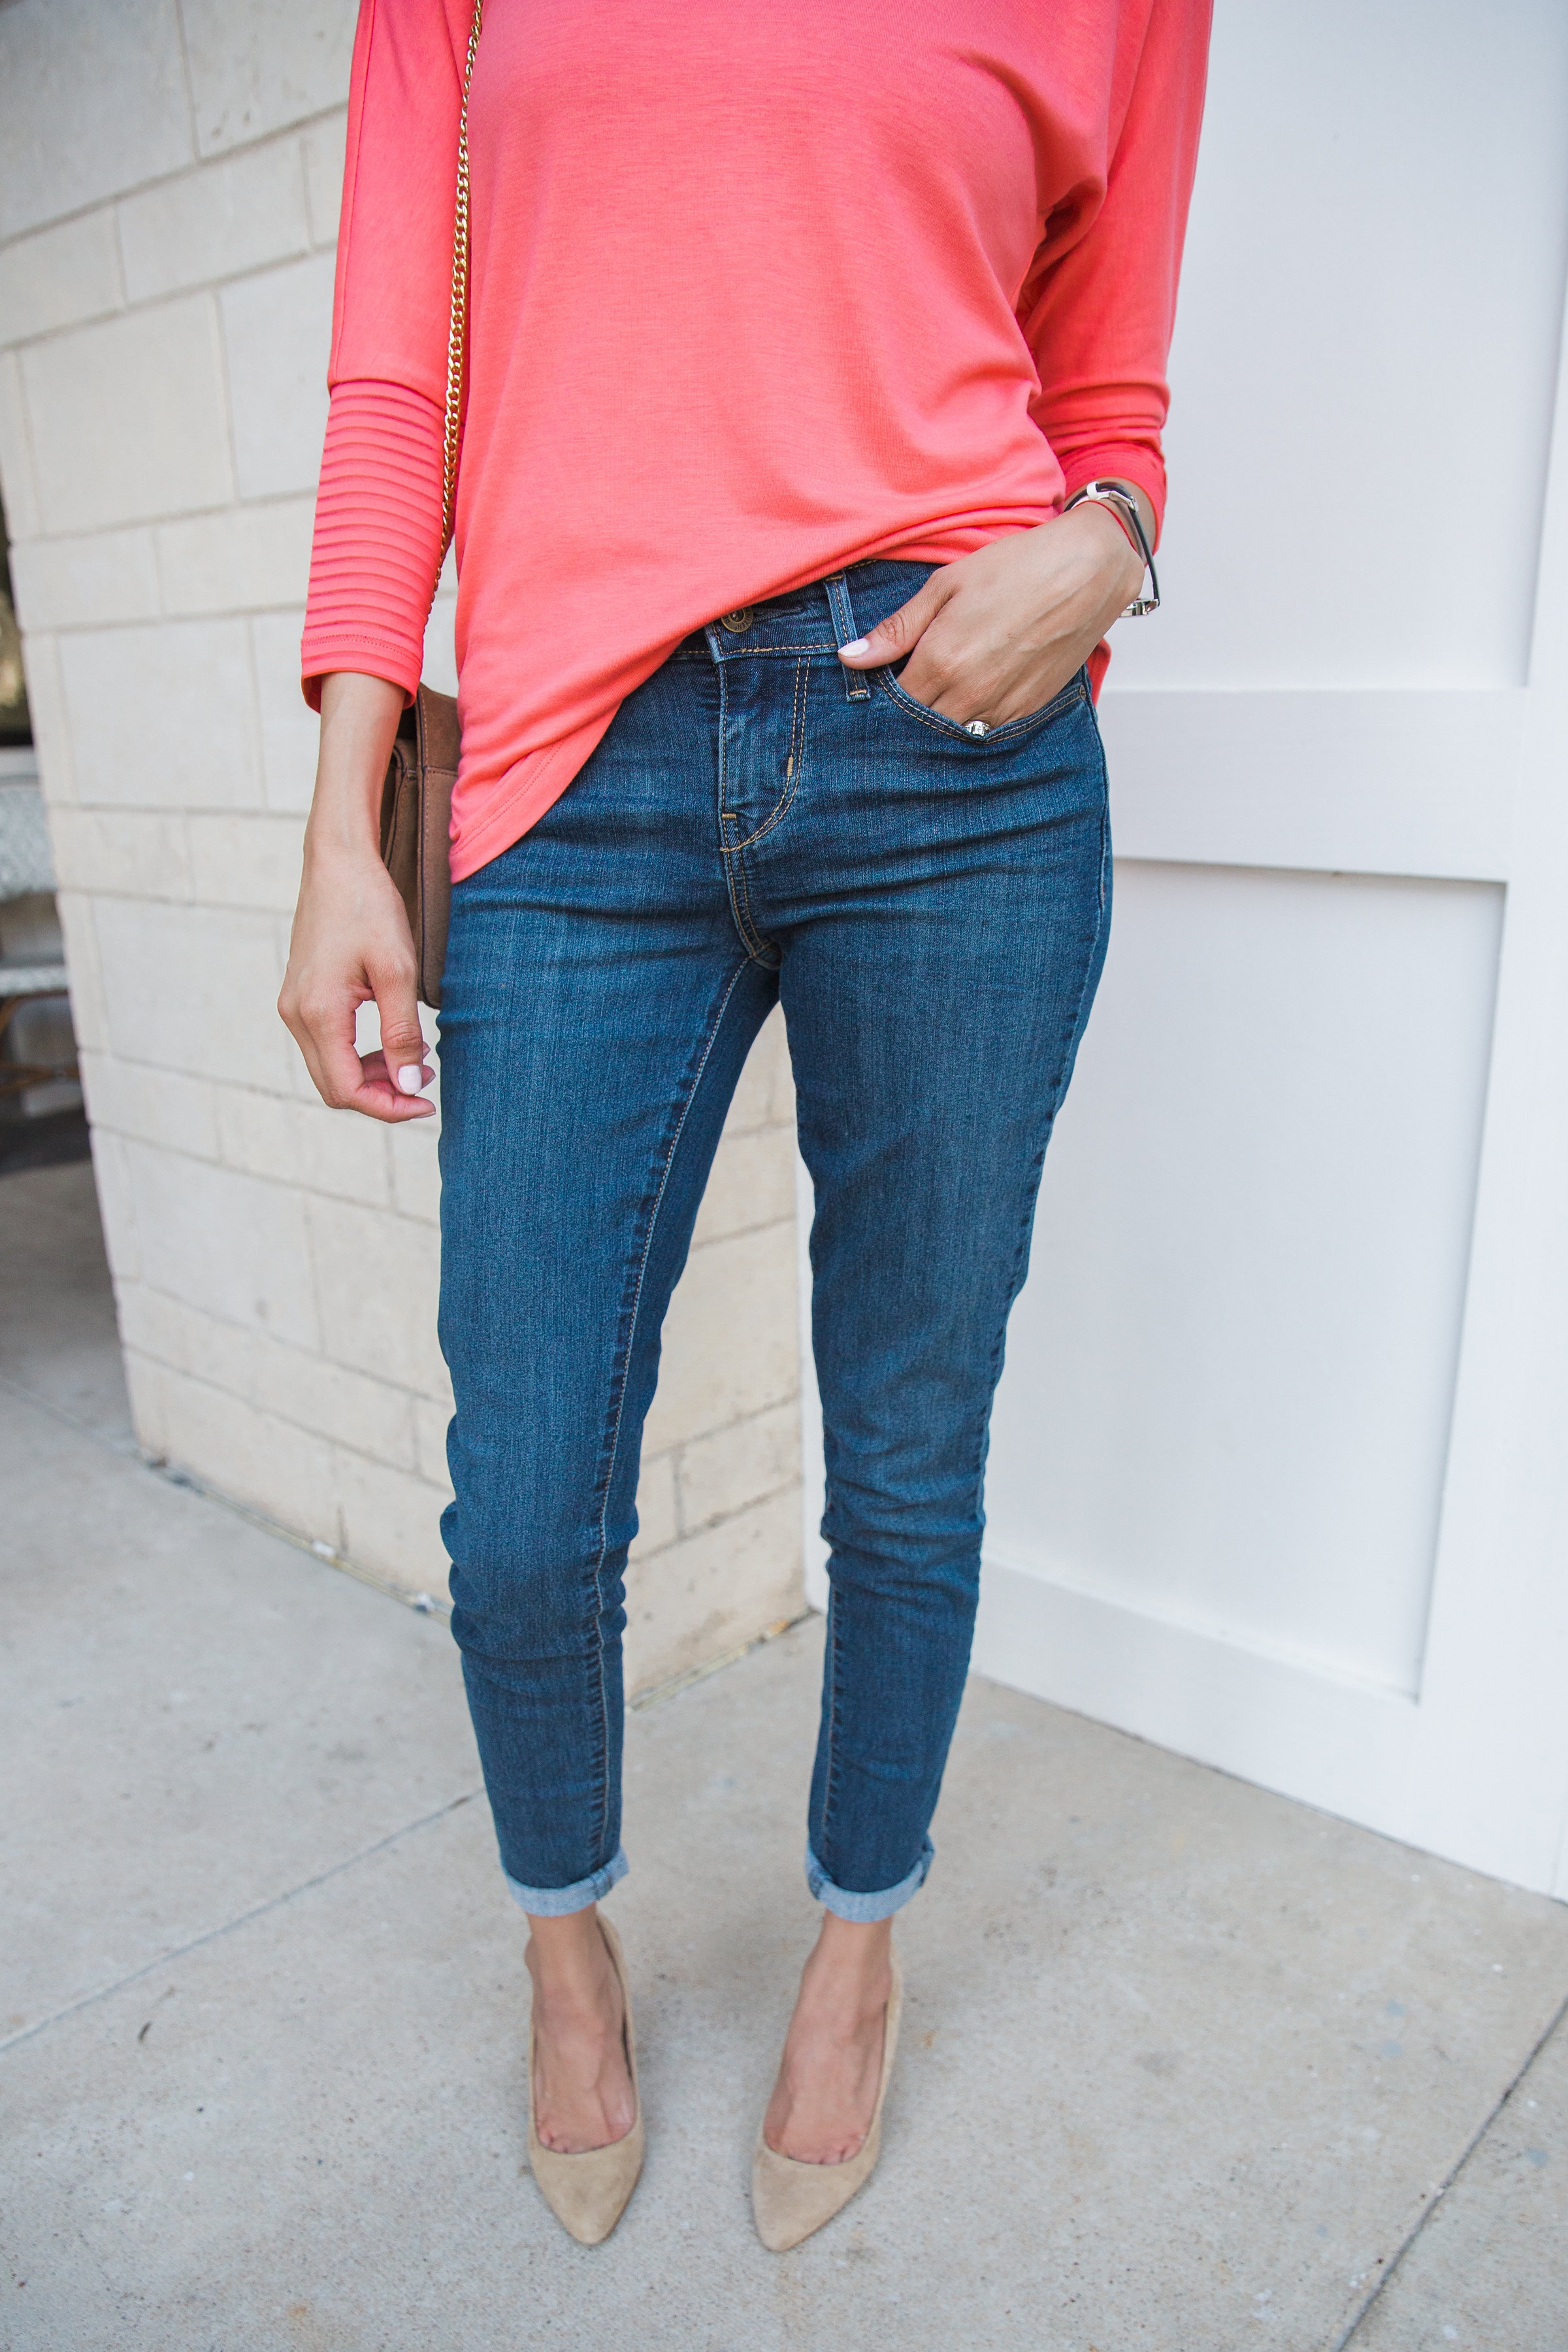 Lifestyle blogger Lilly Beltran of Daily Craving in cuffed skinny jeans and nude high heels